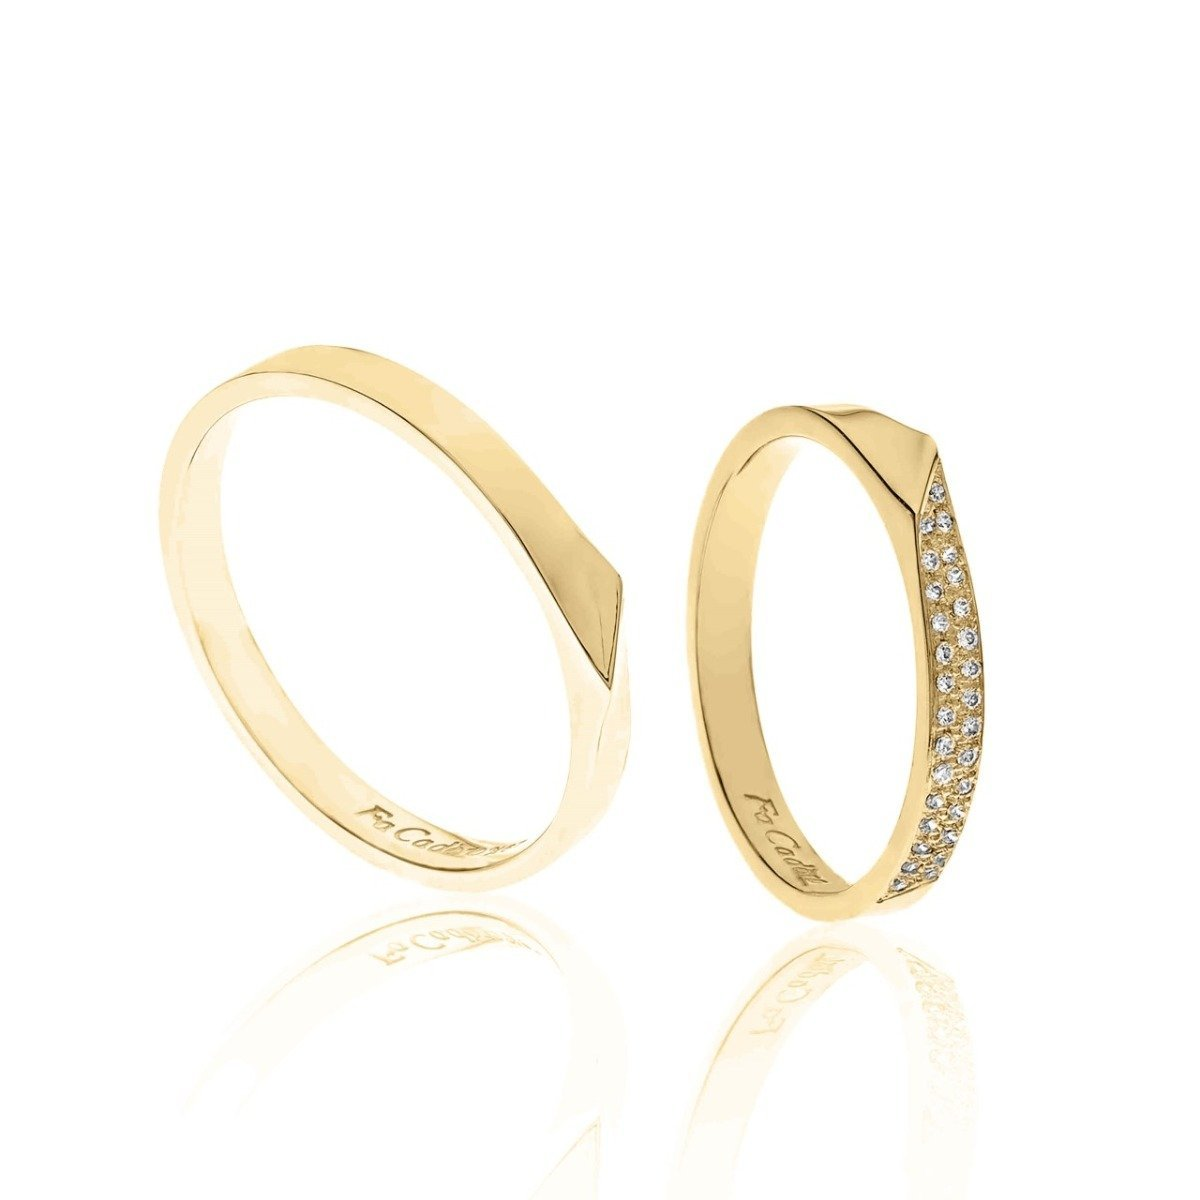 FaCad'oro WR-46 14ct Gold Wedding Ring - Goldy Jewelry Store